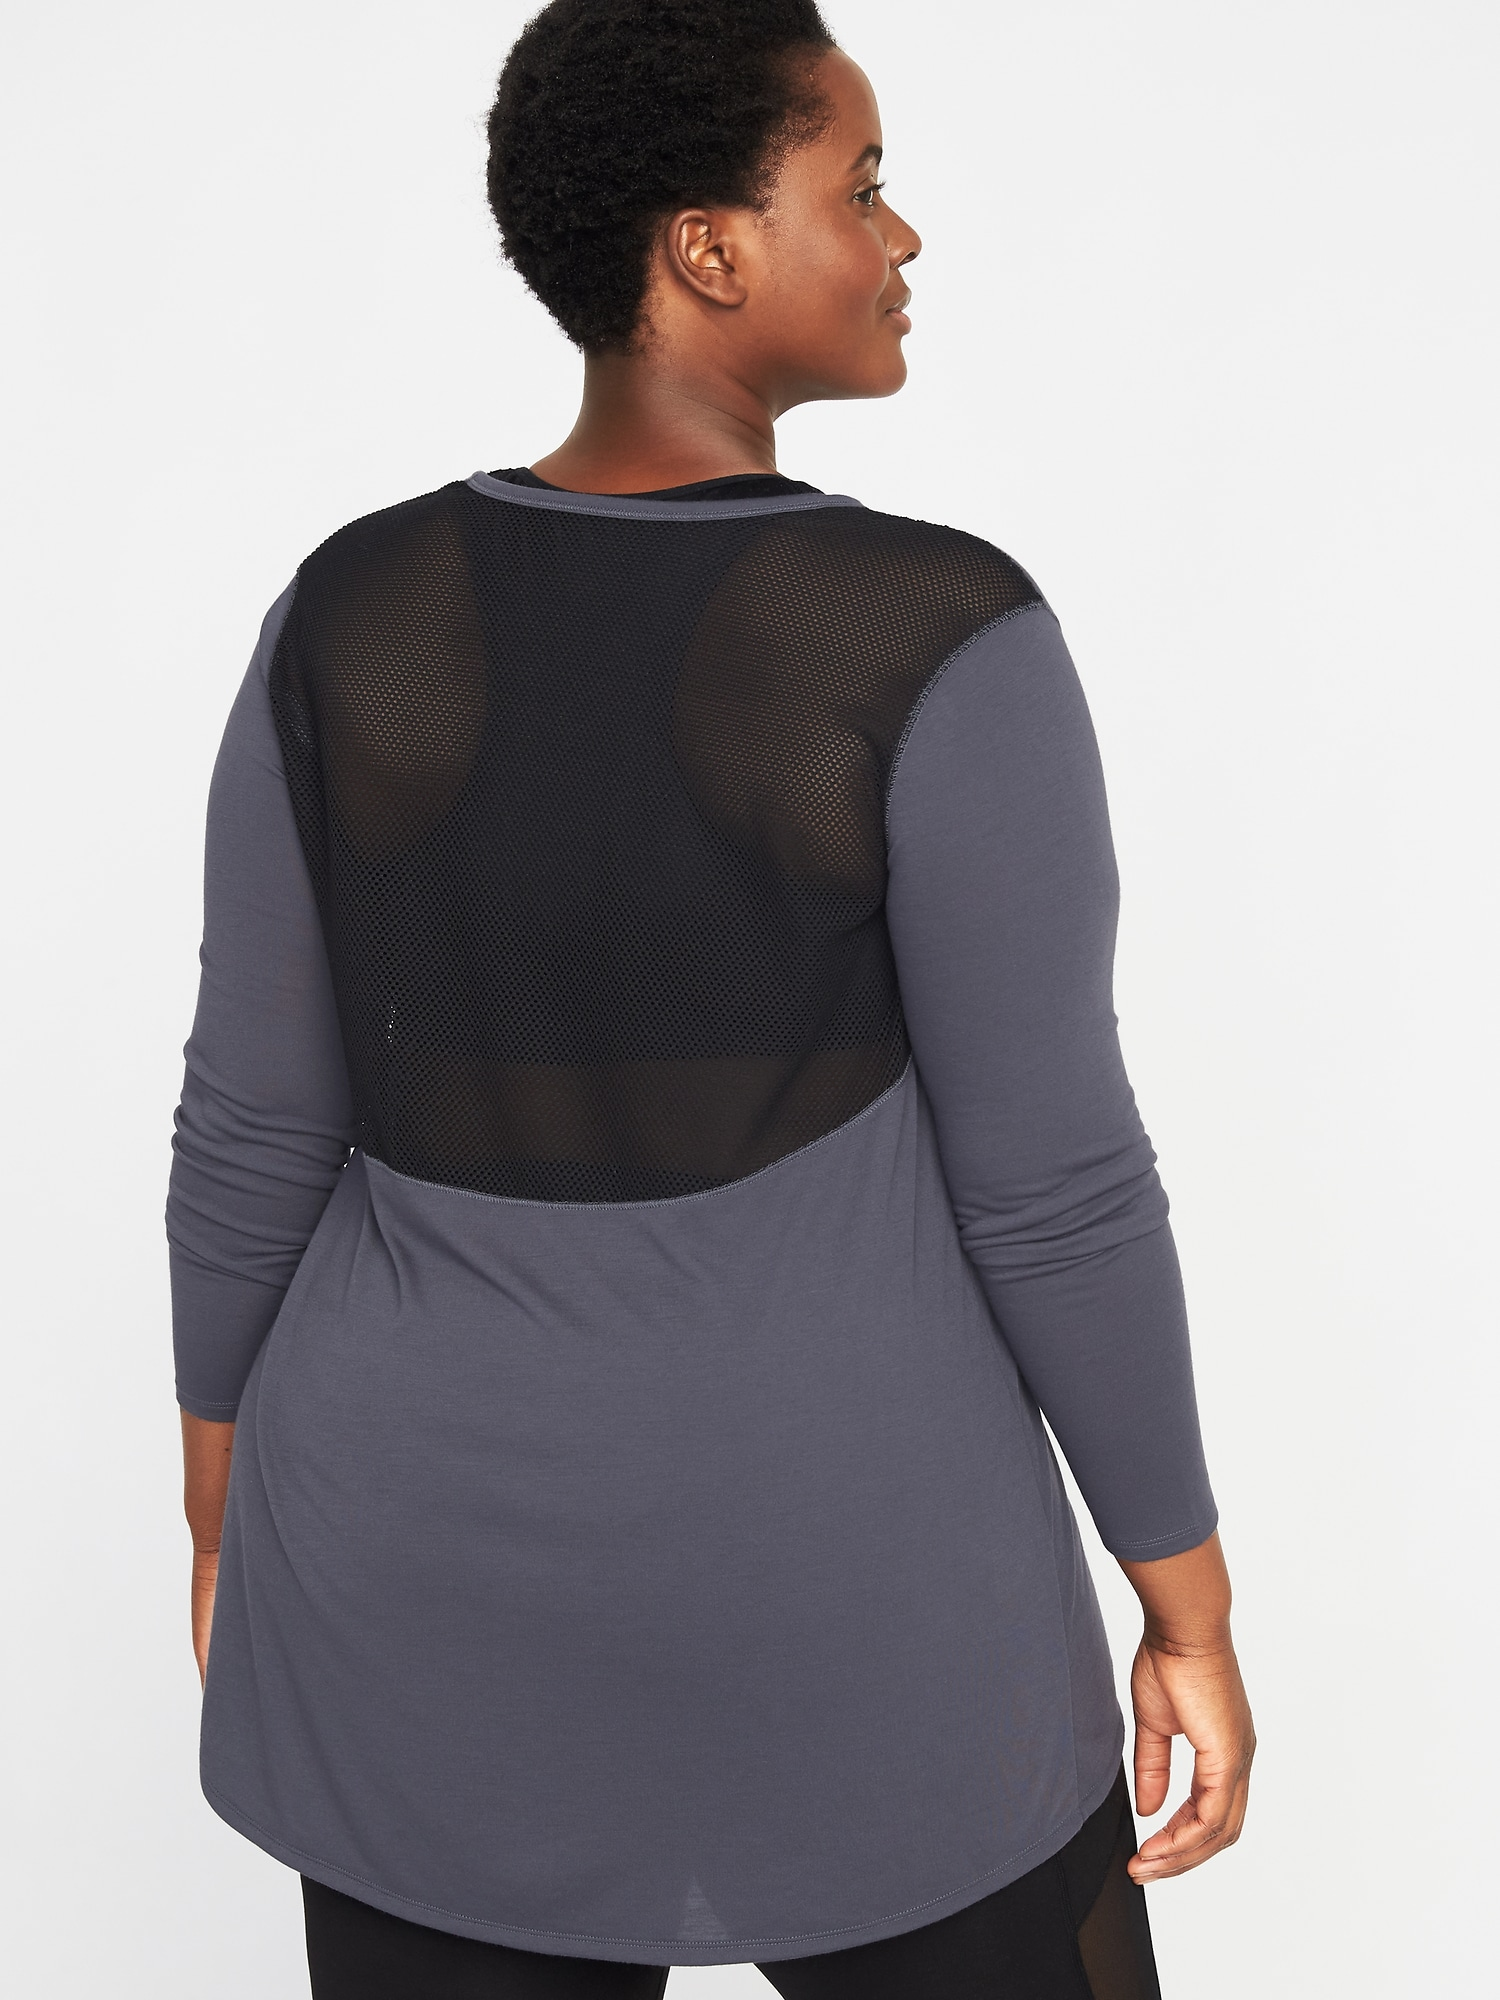 173063acad4 Jersey Mesh-Back Plus-Size Performance Top